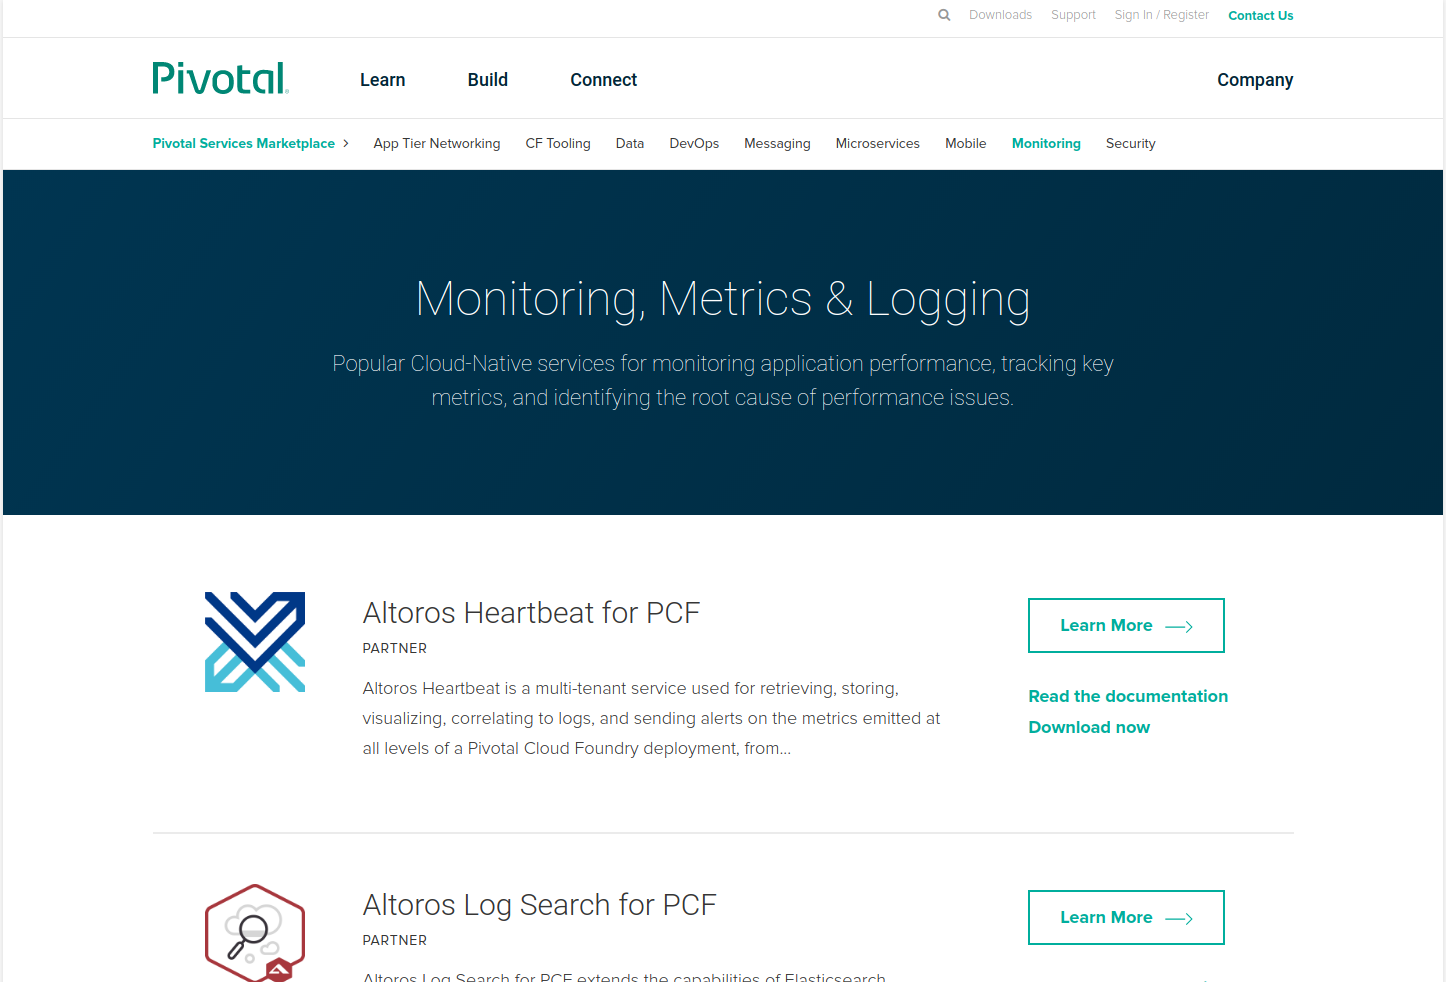 List of Monitoring, Metrics, and Logging Services available on Pivotal Marketplace